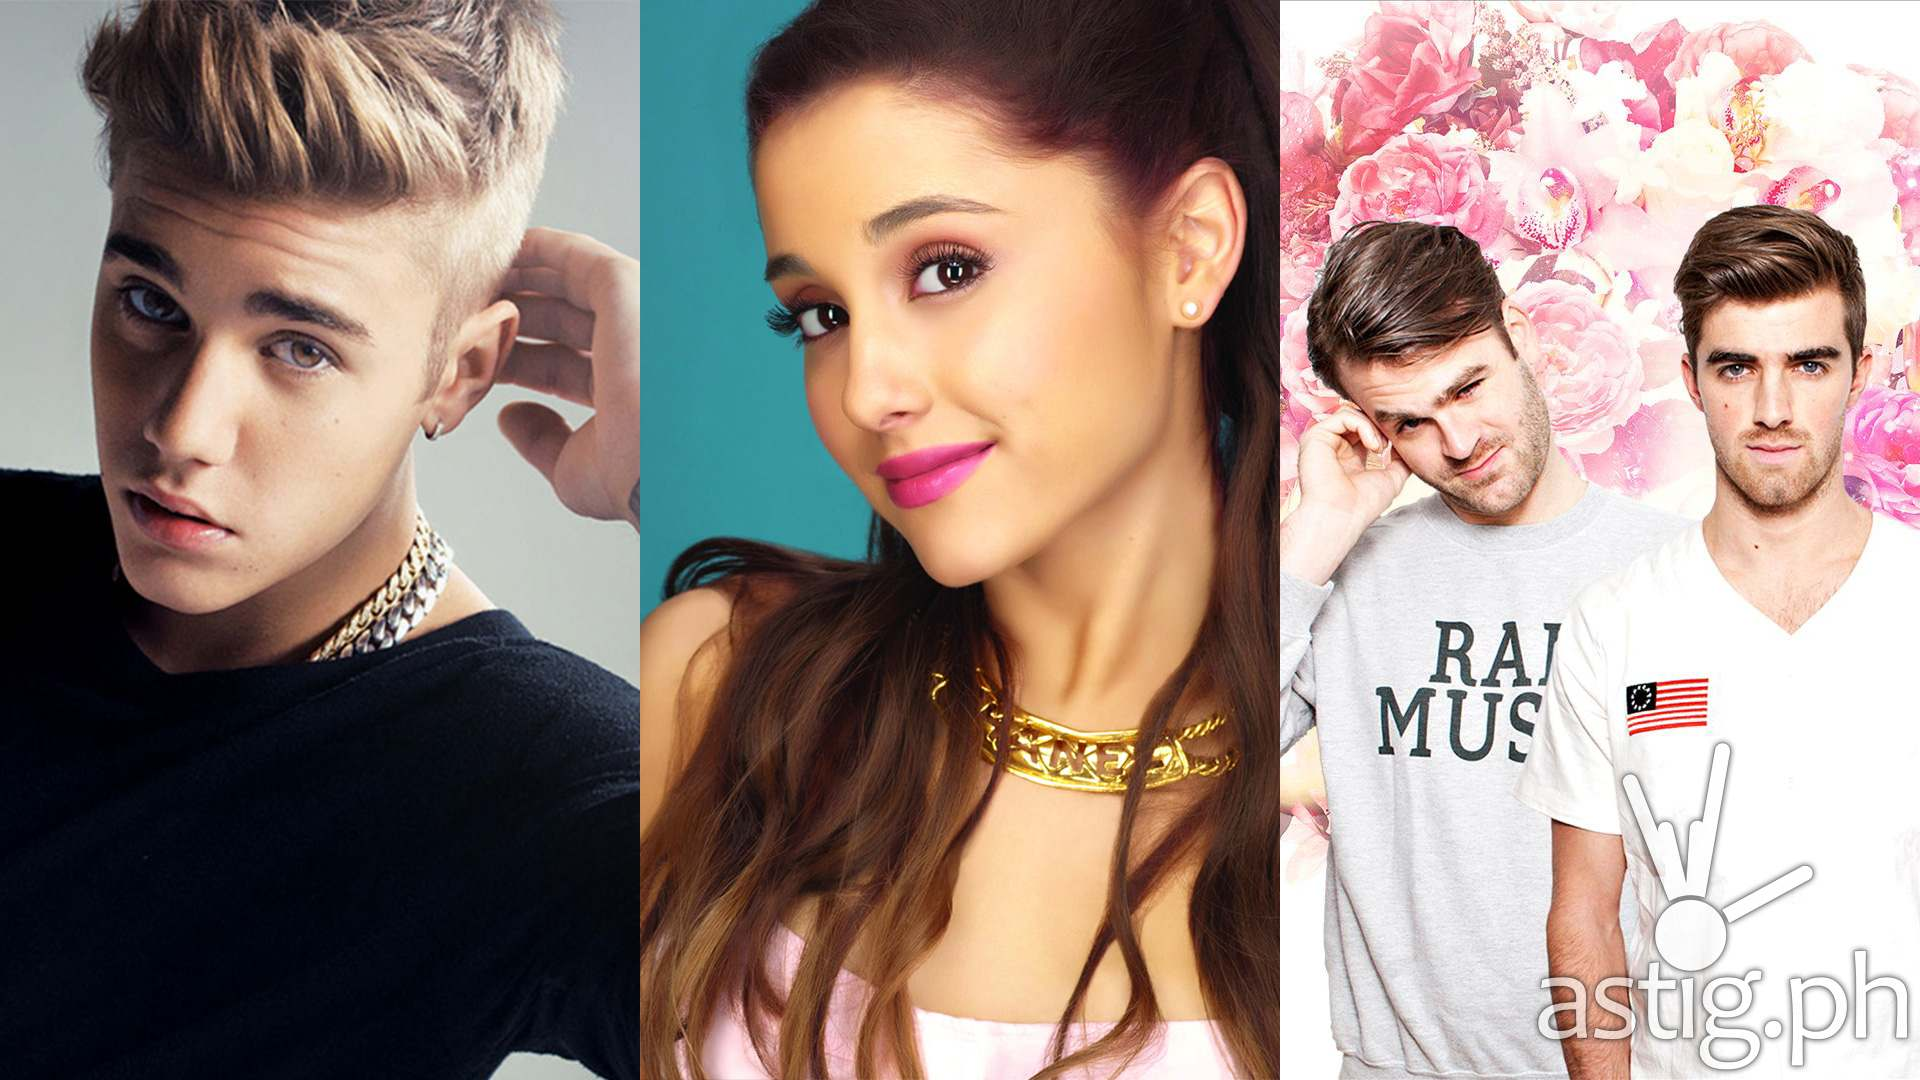 justin bieber ariana grande the chainsmokers